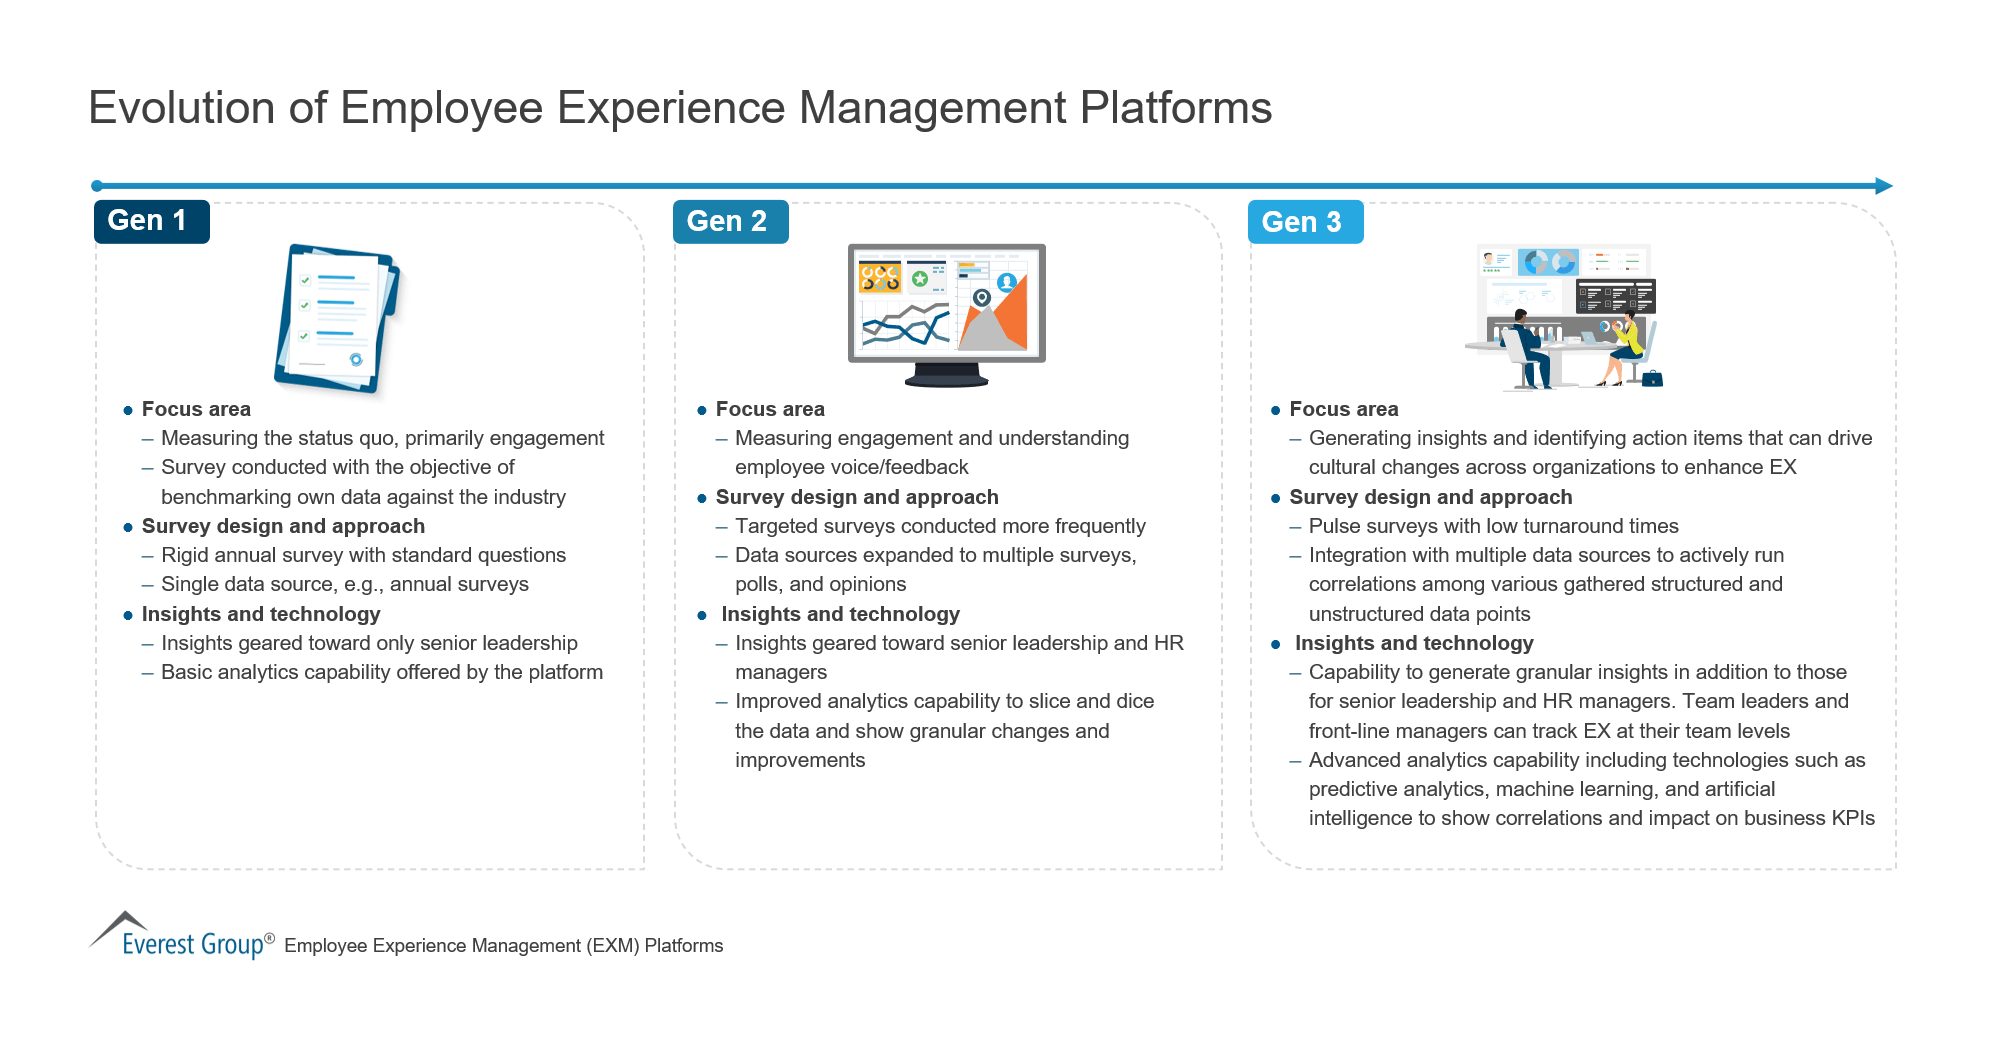 Evolution of Employee Experience Management Platforms